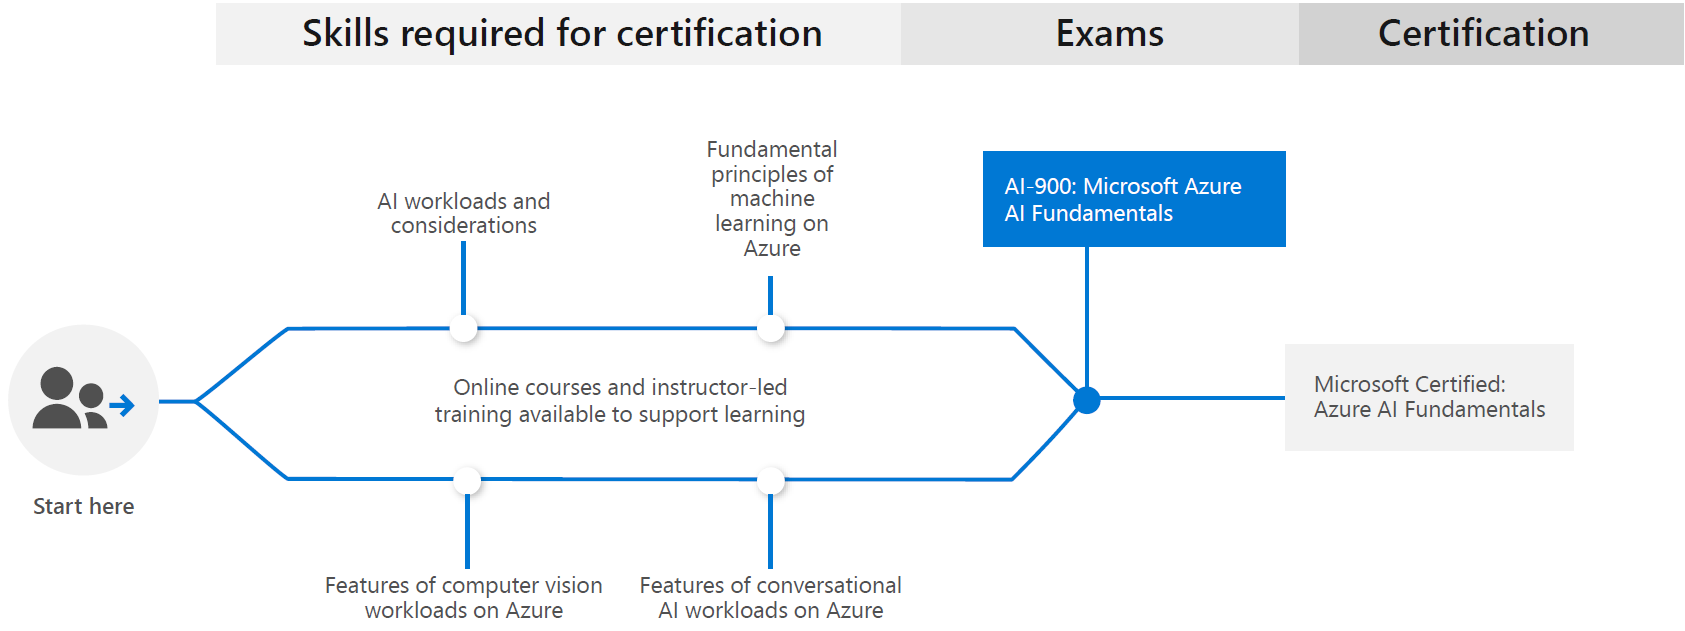 Learning Path for Microsoft Certified: Azure AI Fundamentals